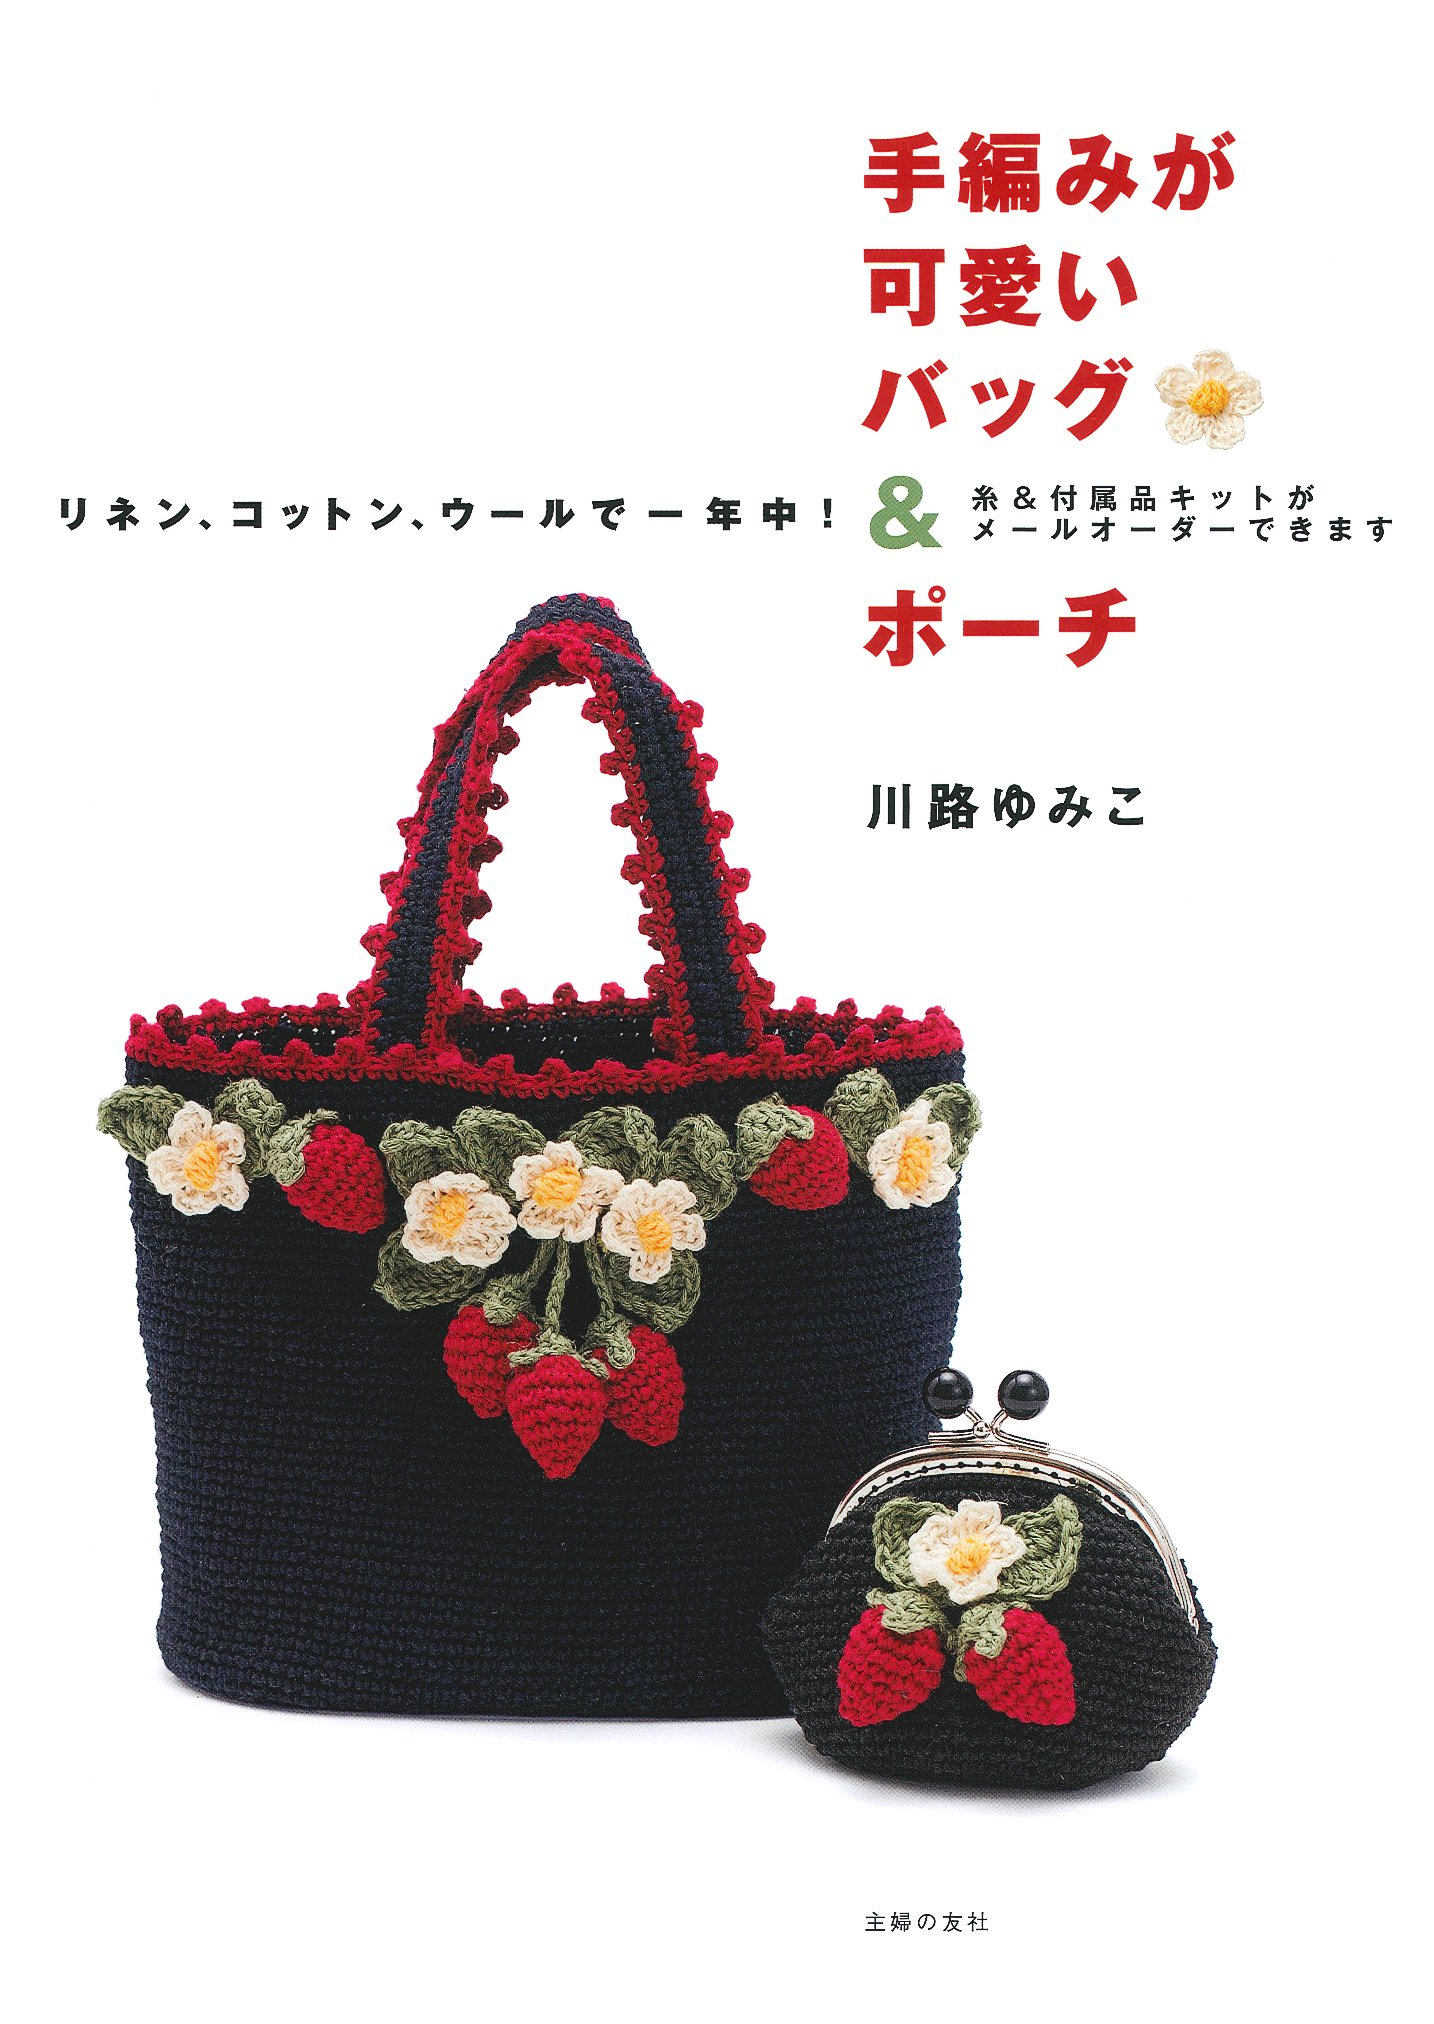 Hand-knitted cute bag & pouch